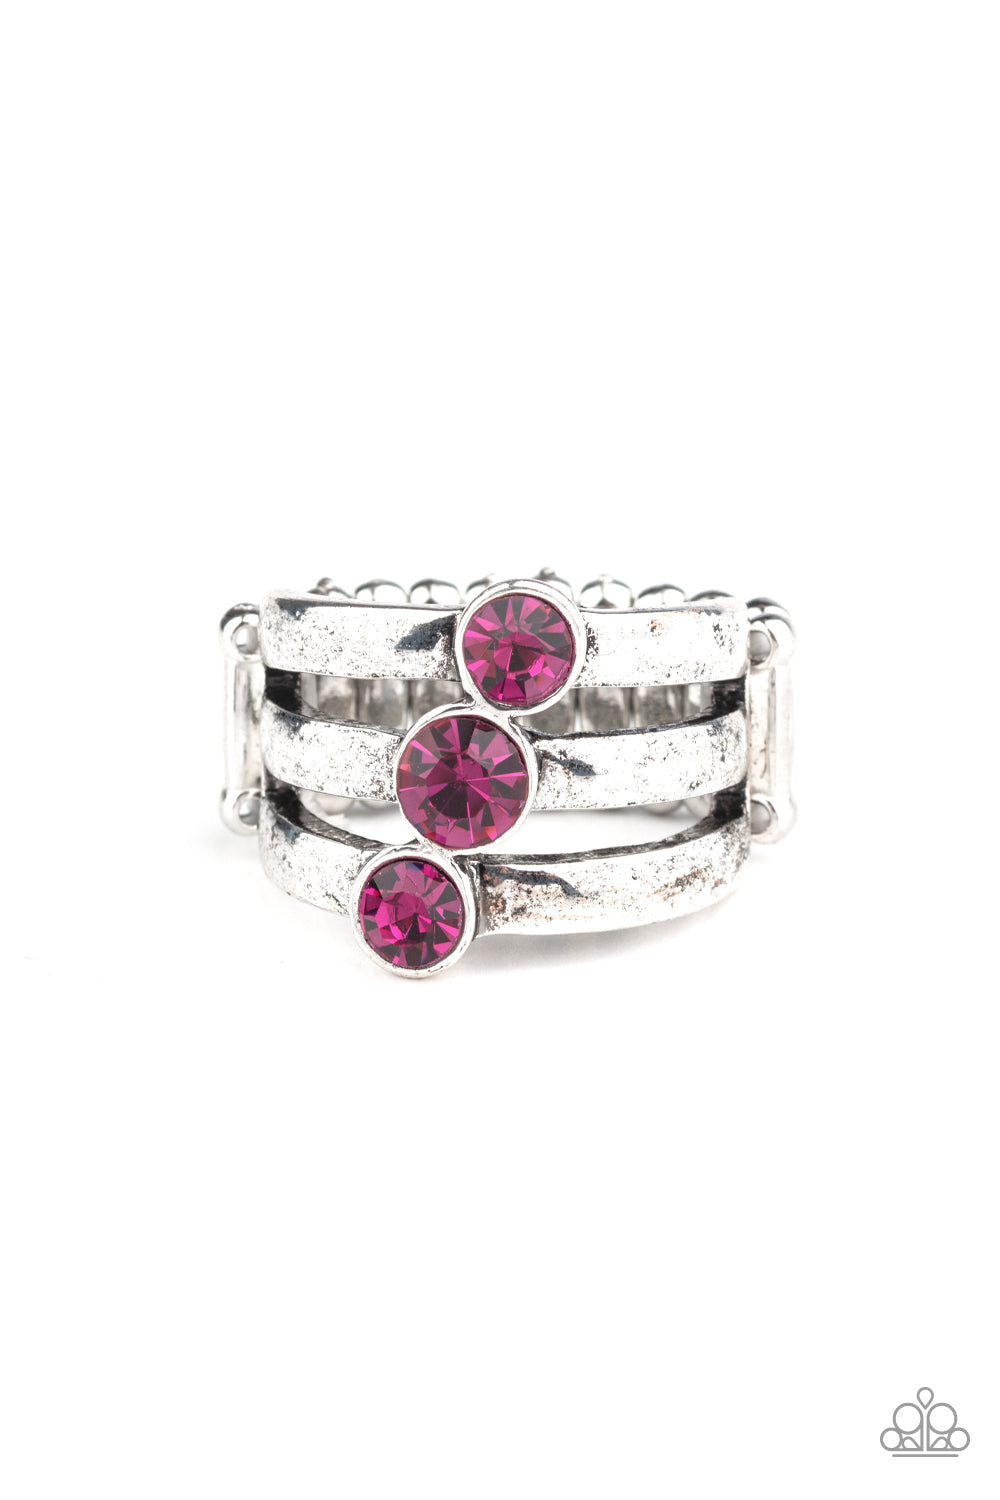 Paparazzi Accessories - Triple The Twinkle - Pink Ring